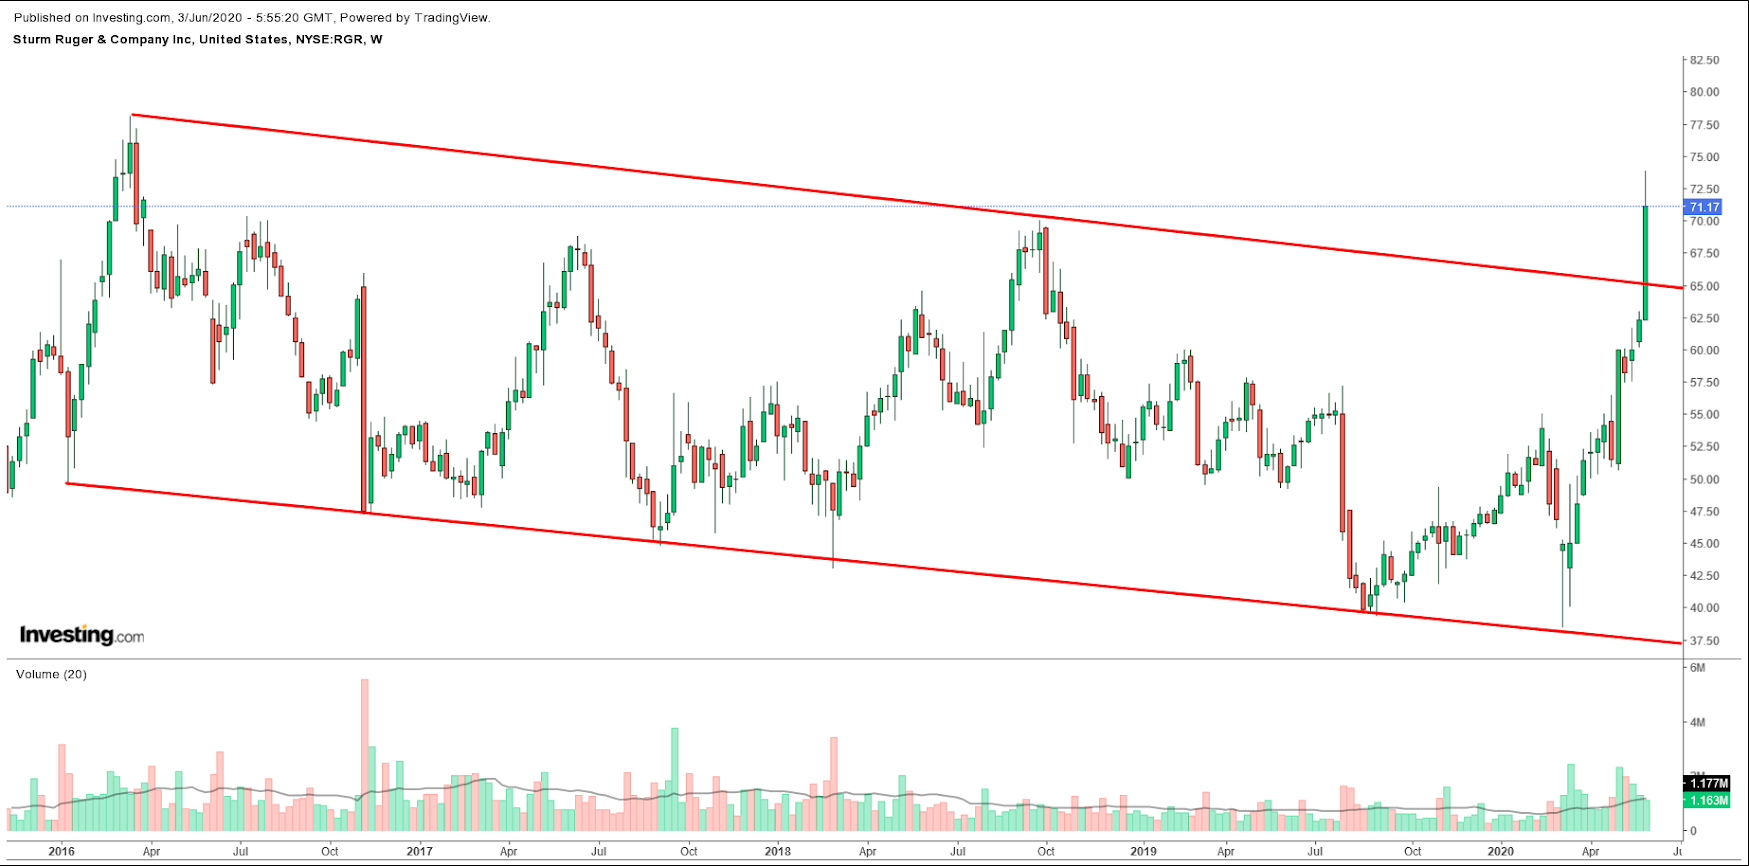 Sturm Ruger & Company Weekly Chart